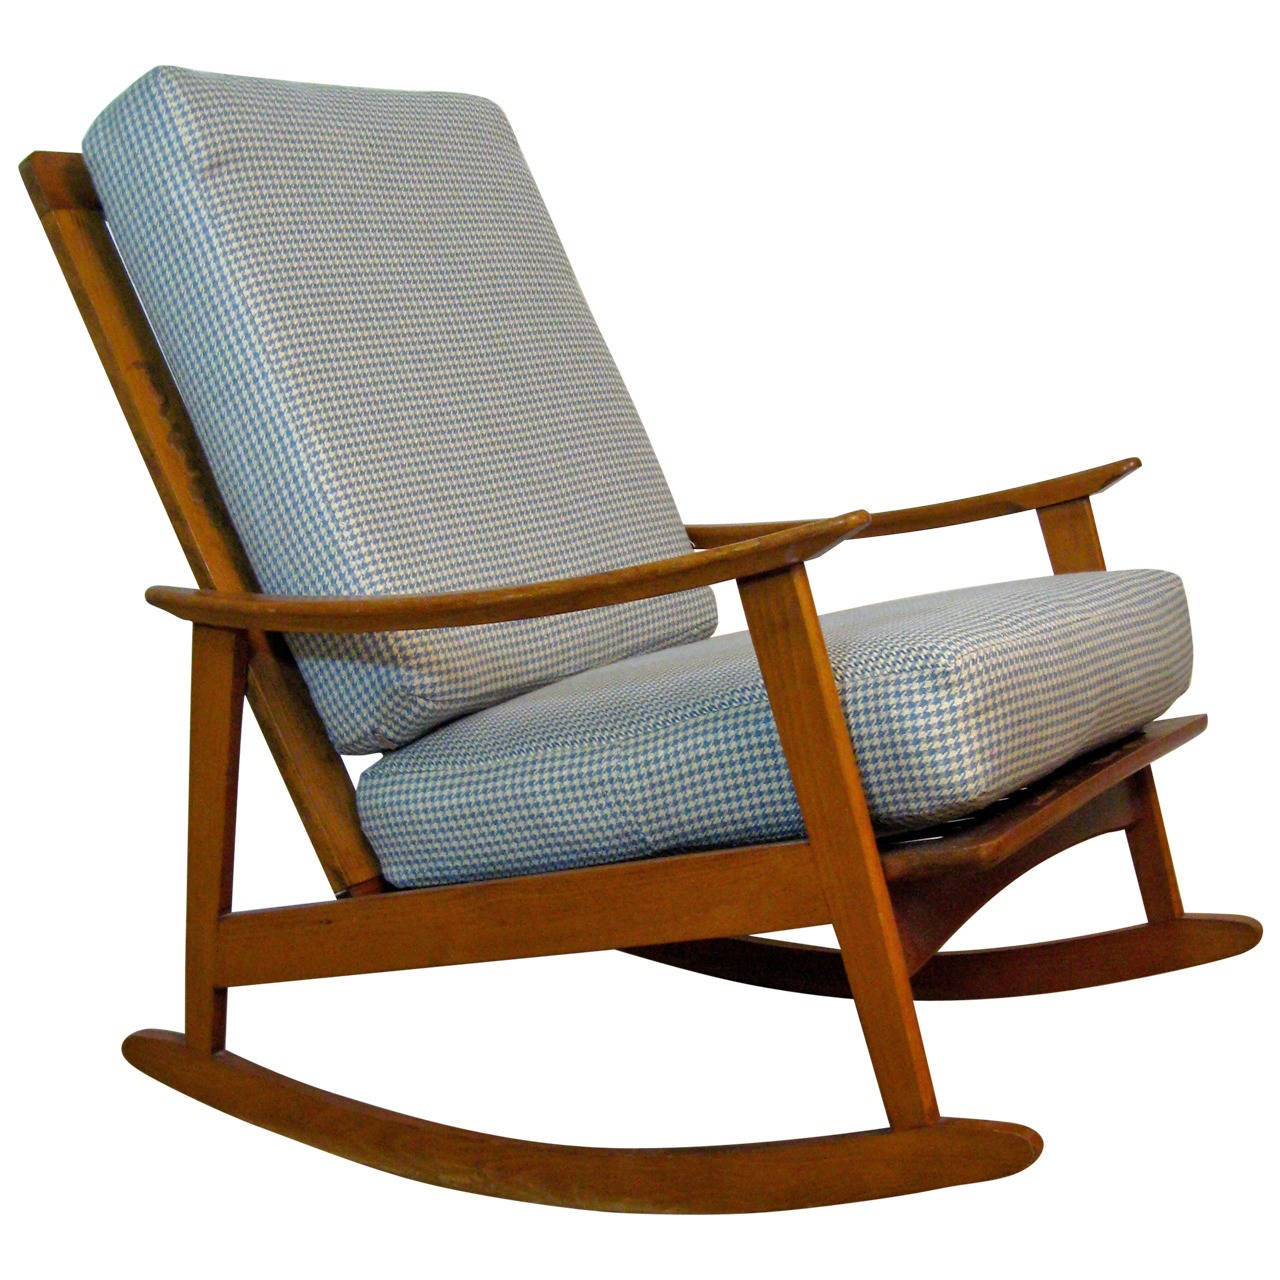 Mid century modern rocking chair for sale at 1stdibs Mid century chairs